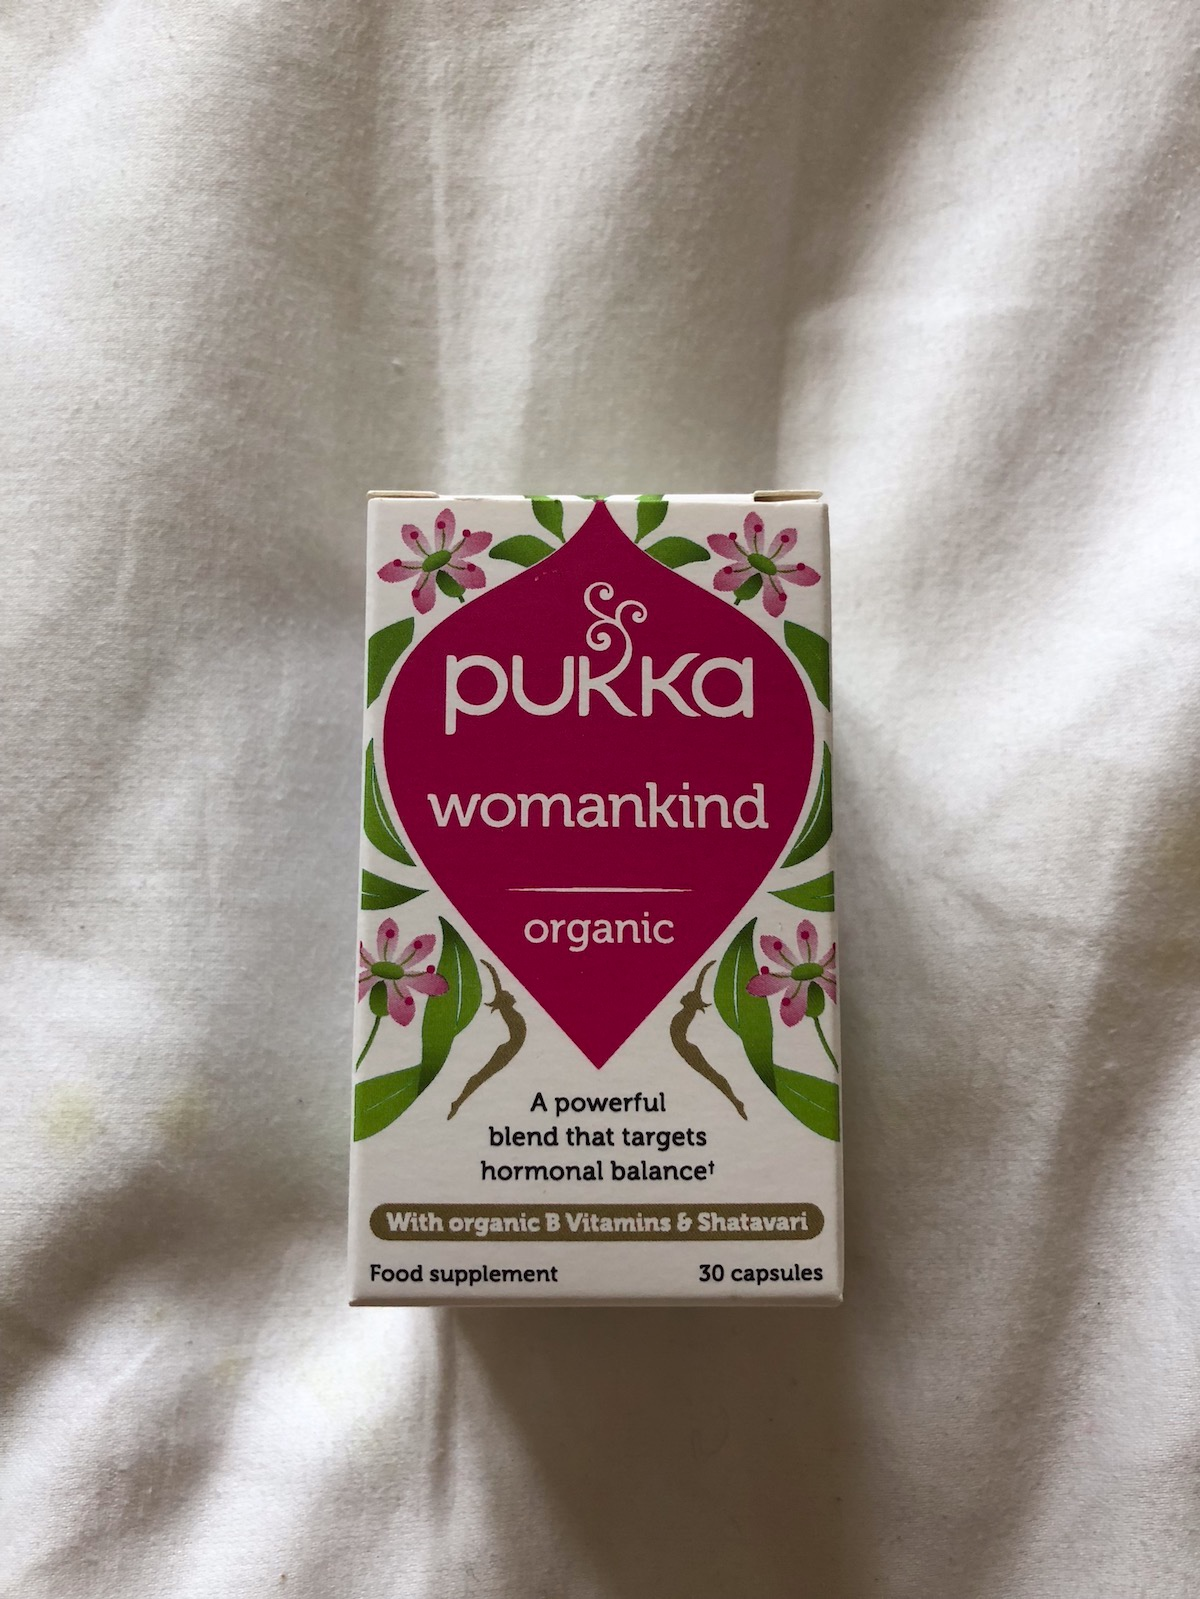 - This product is my hormone balancing hero, its well blended and it works! I take every day and love Pukka over all as a brand. I recommend to all my lady loves out there.